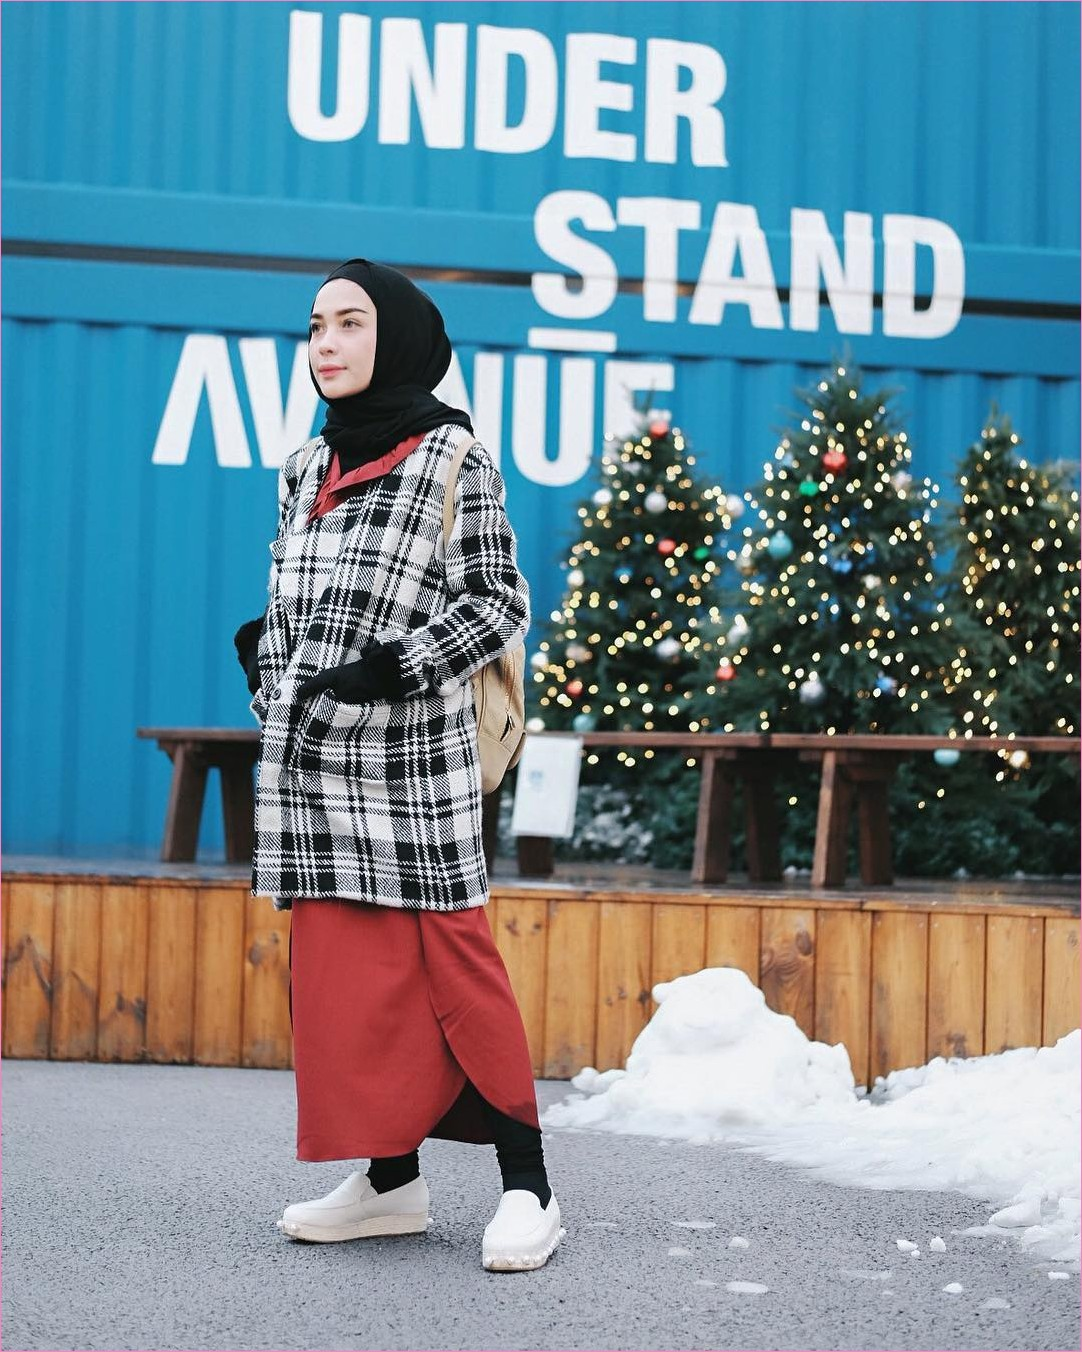 Outfit Baju Traveler Berhijab untuk Keluar Negri Ala Selebgram 2018 ciput rajut pashmina diamond sarung tangan legging rok dress oren cardigan jacket kotak sneakers lace ups flatshoes putih ootd outfit trendy backpack krem coat